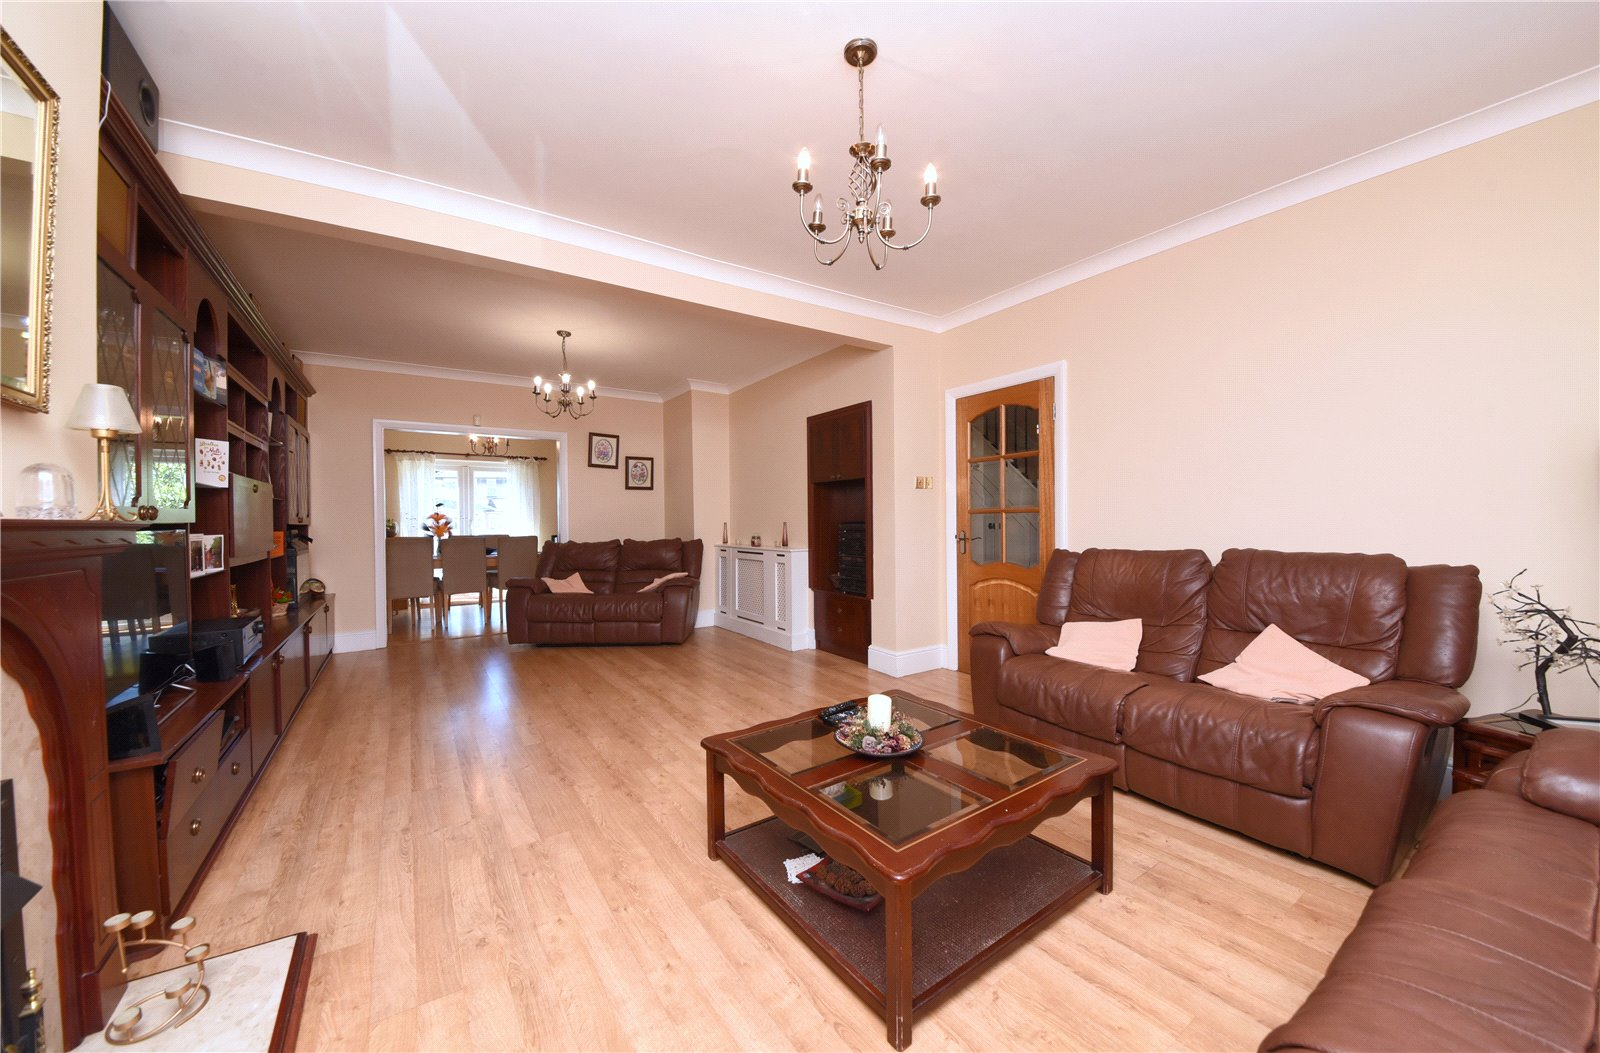 3 bed house for sale in Southgate, N14 4NY - Property Image 1